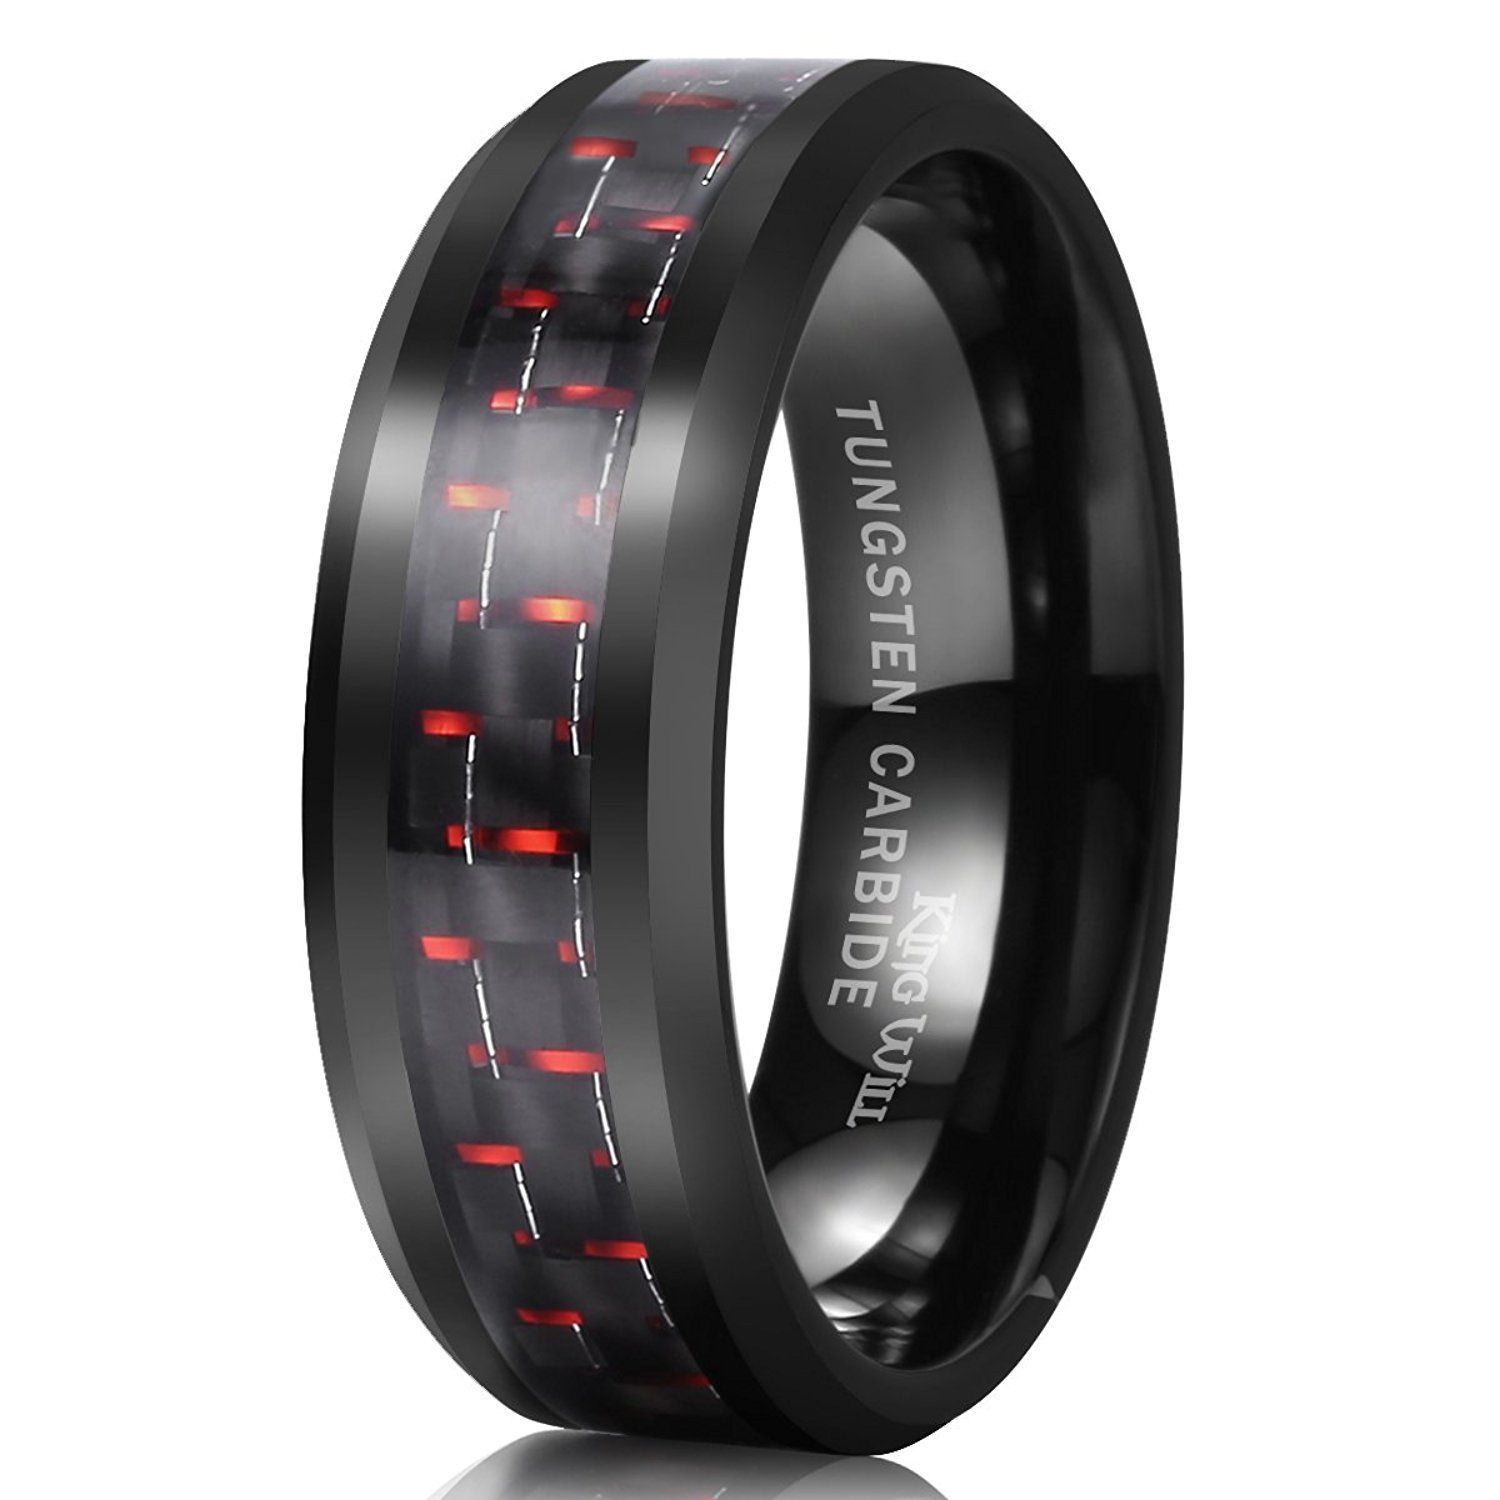 bands designs com unique ideas will dragon modern brilliant for white hammer settings atdisability zoom gold loading guy your wedding designer of rings design tungsten men and mens finish rose beveled band with women silver king own full black carbide ring size engagement